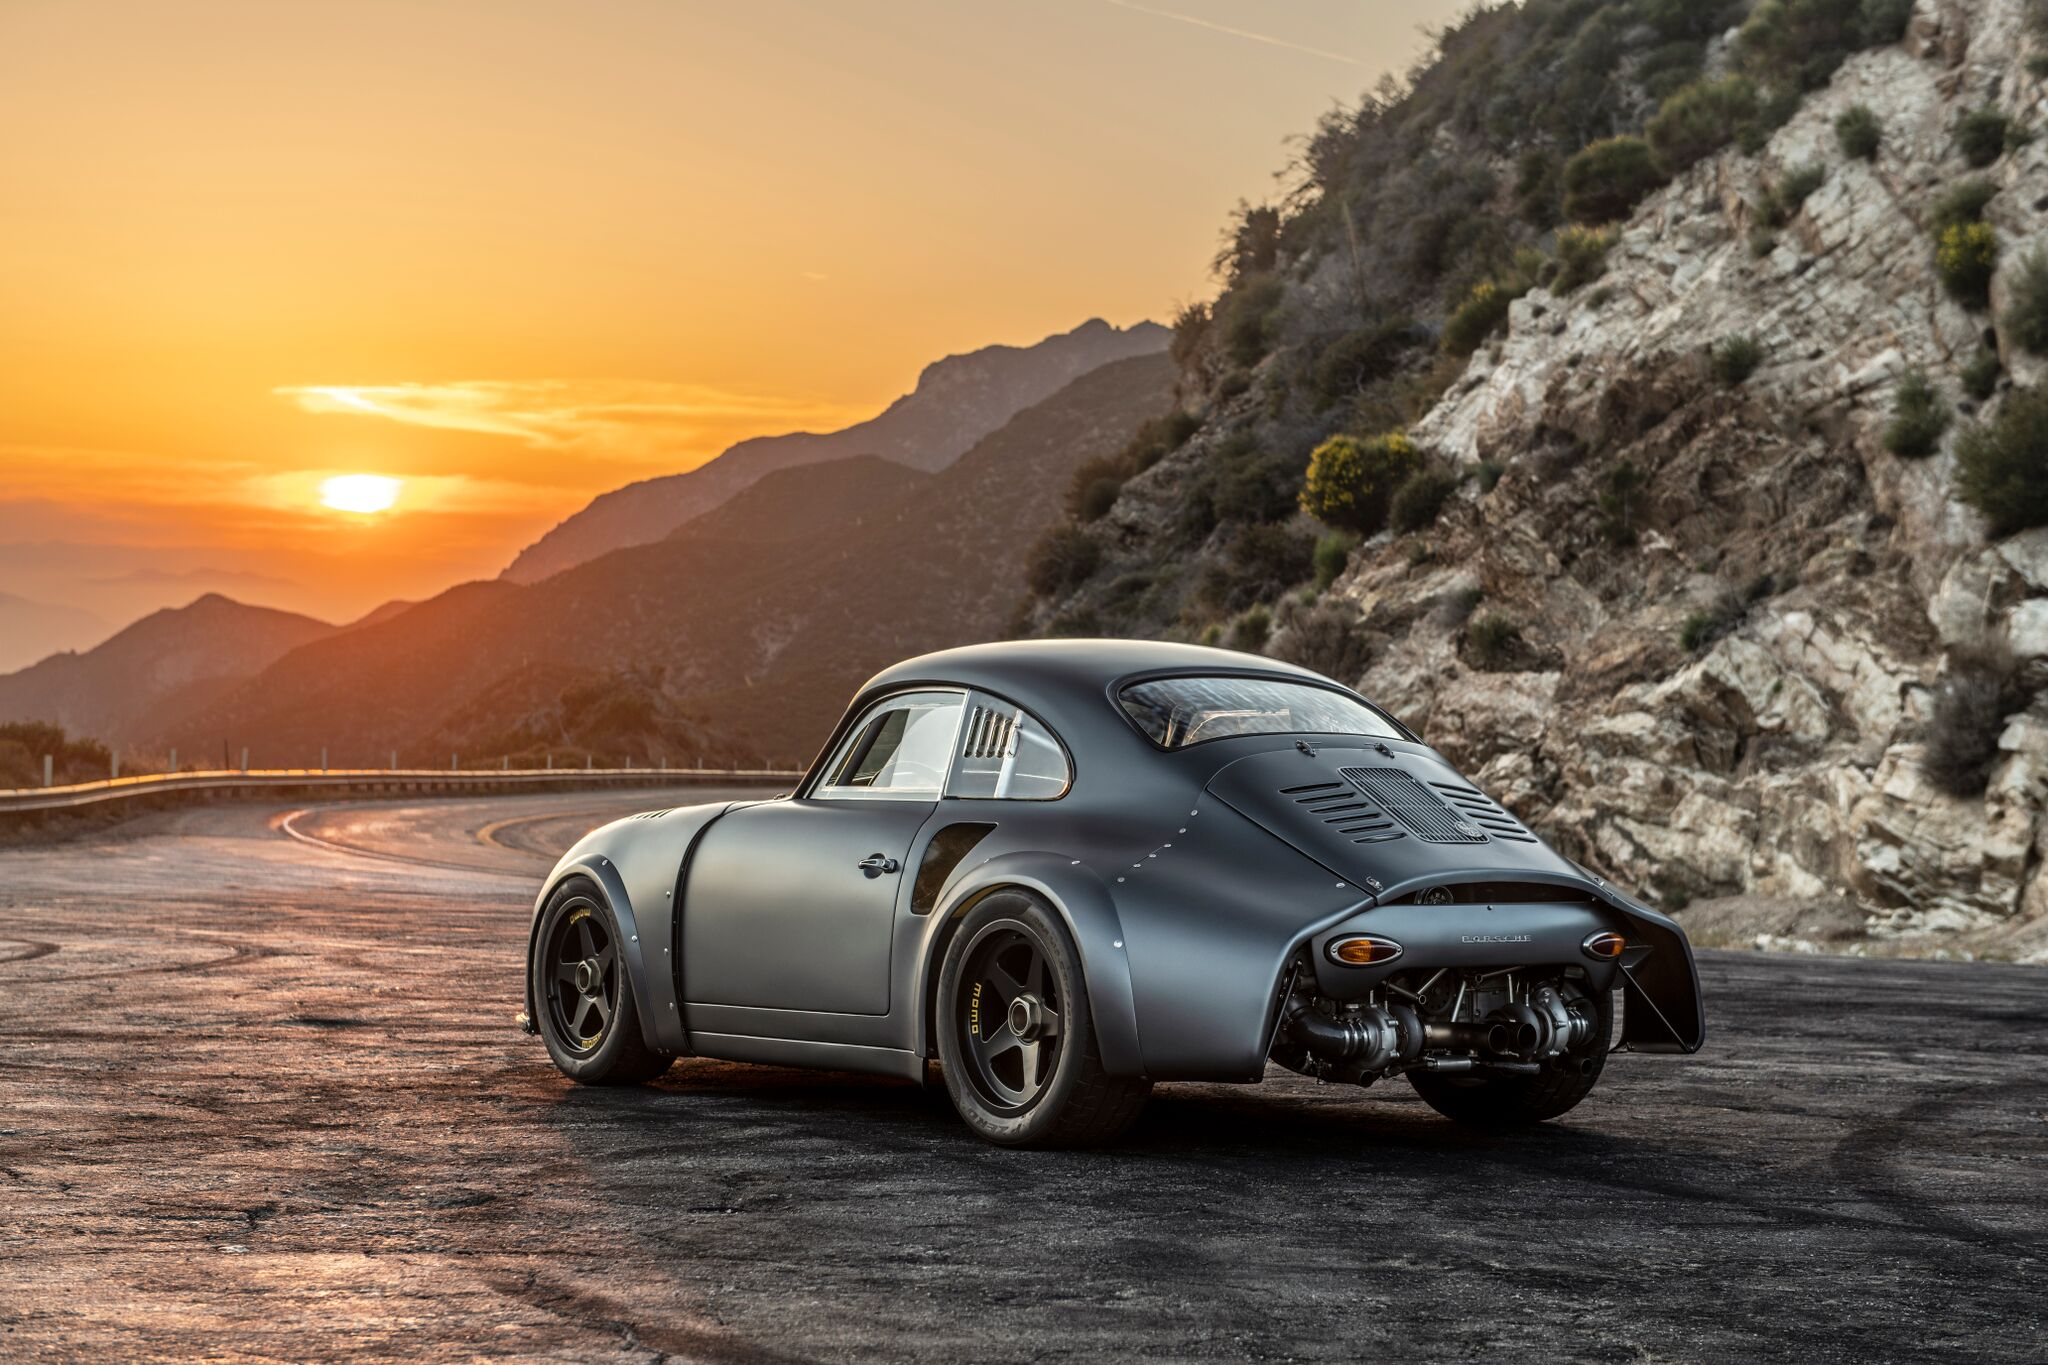 Porsche-356-RSR-Outlaw-by-Momo-and-Emory-motorsports-11